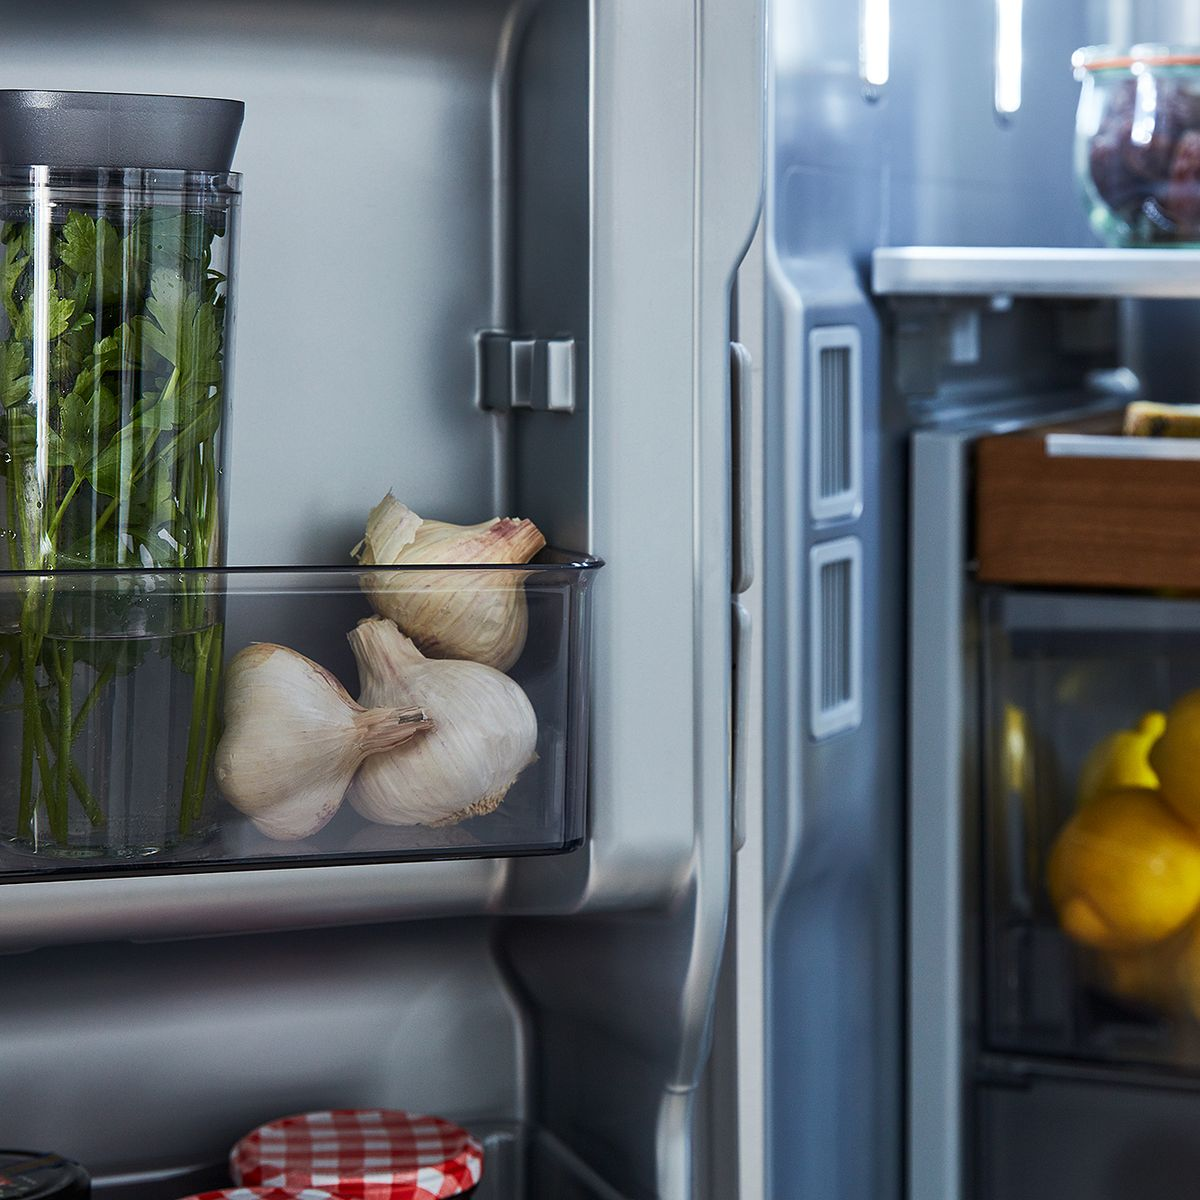 37 Resources for Selecting & Storing Your Groceries